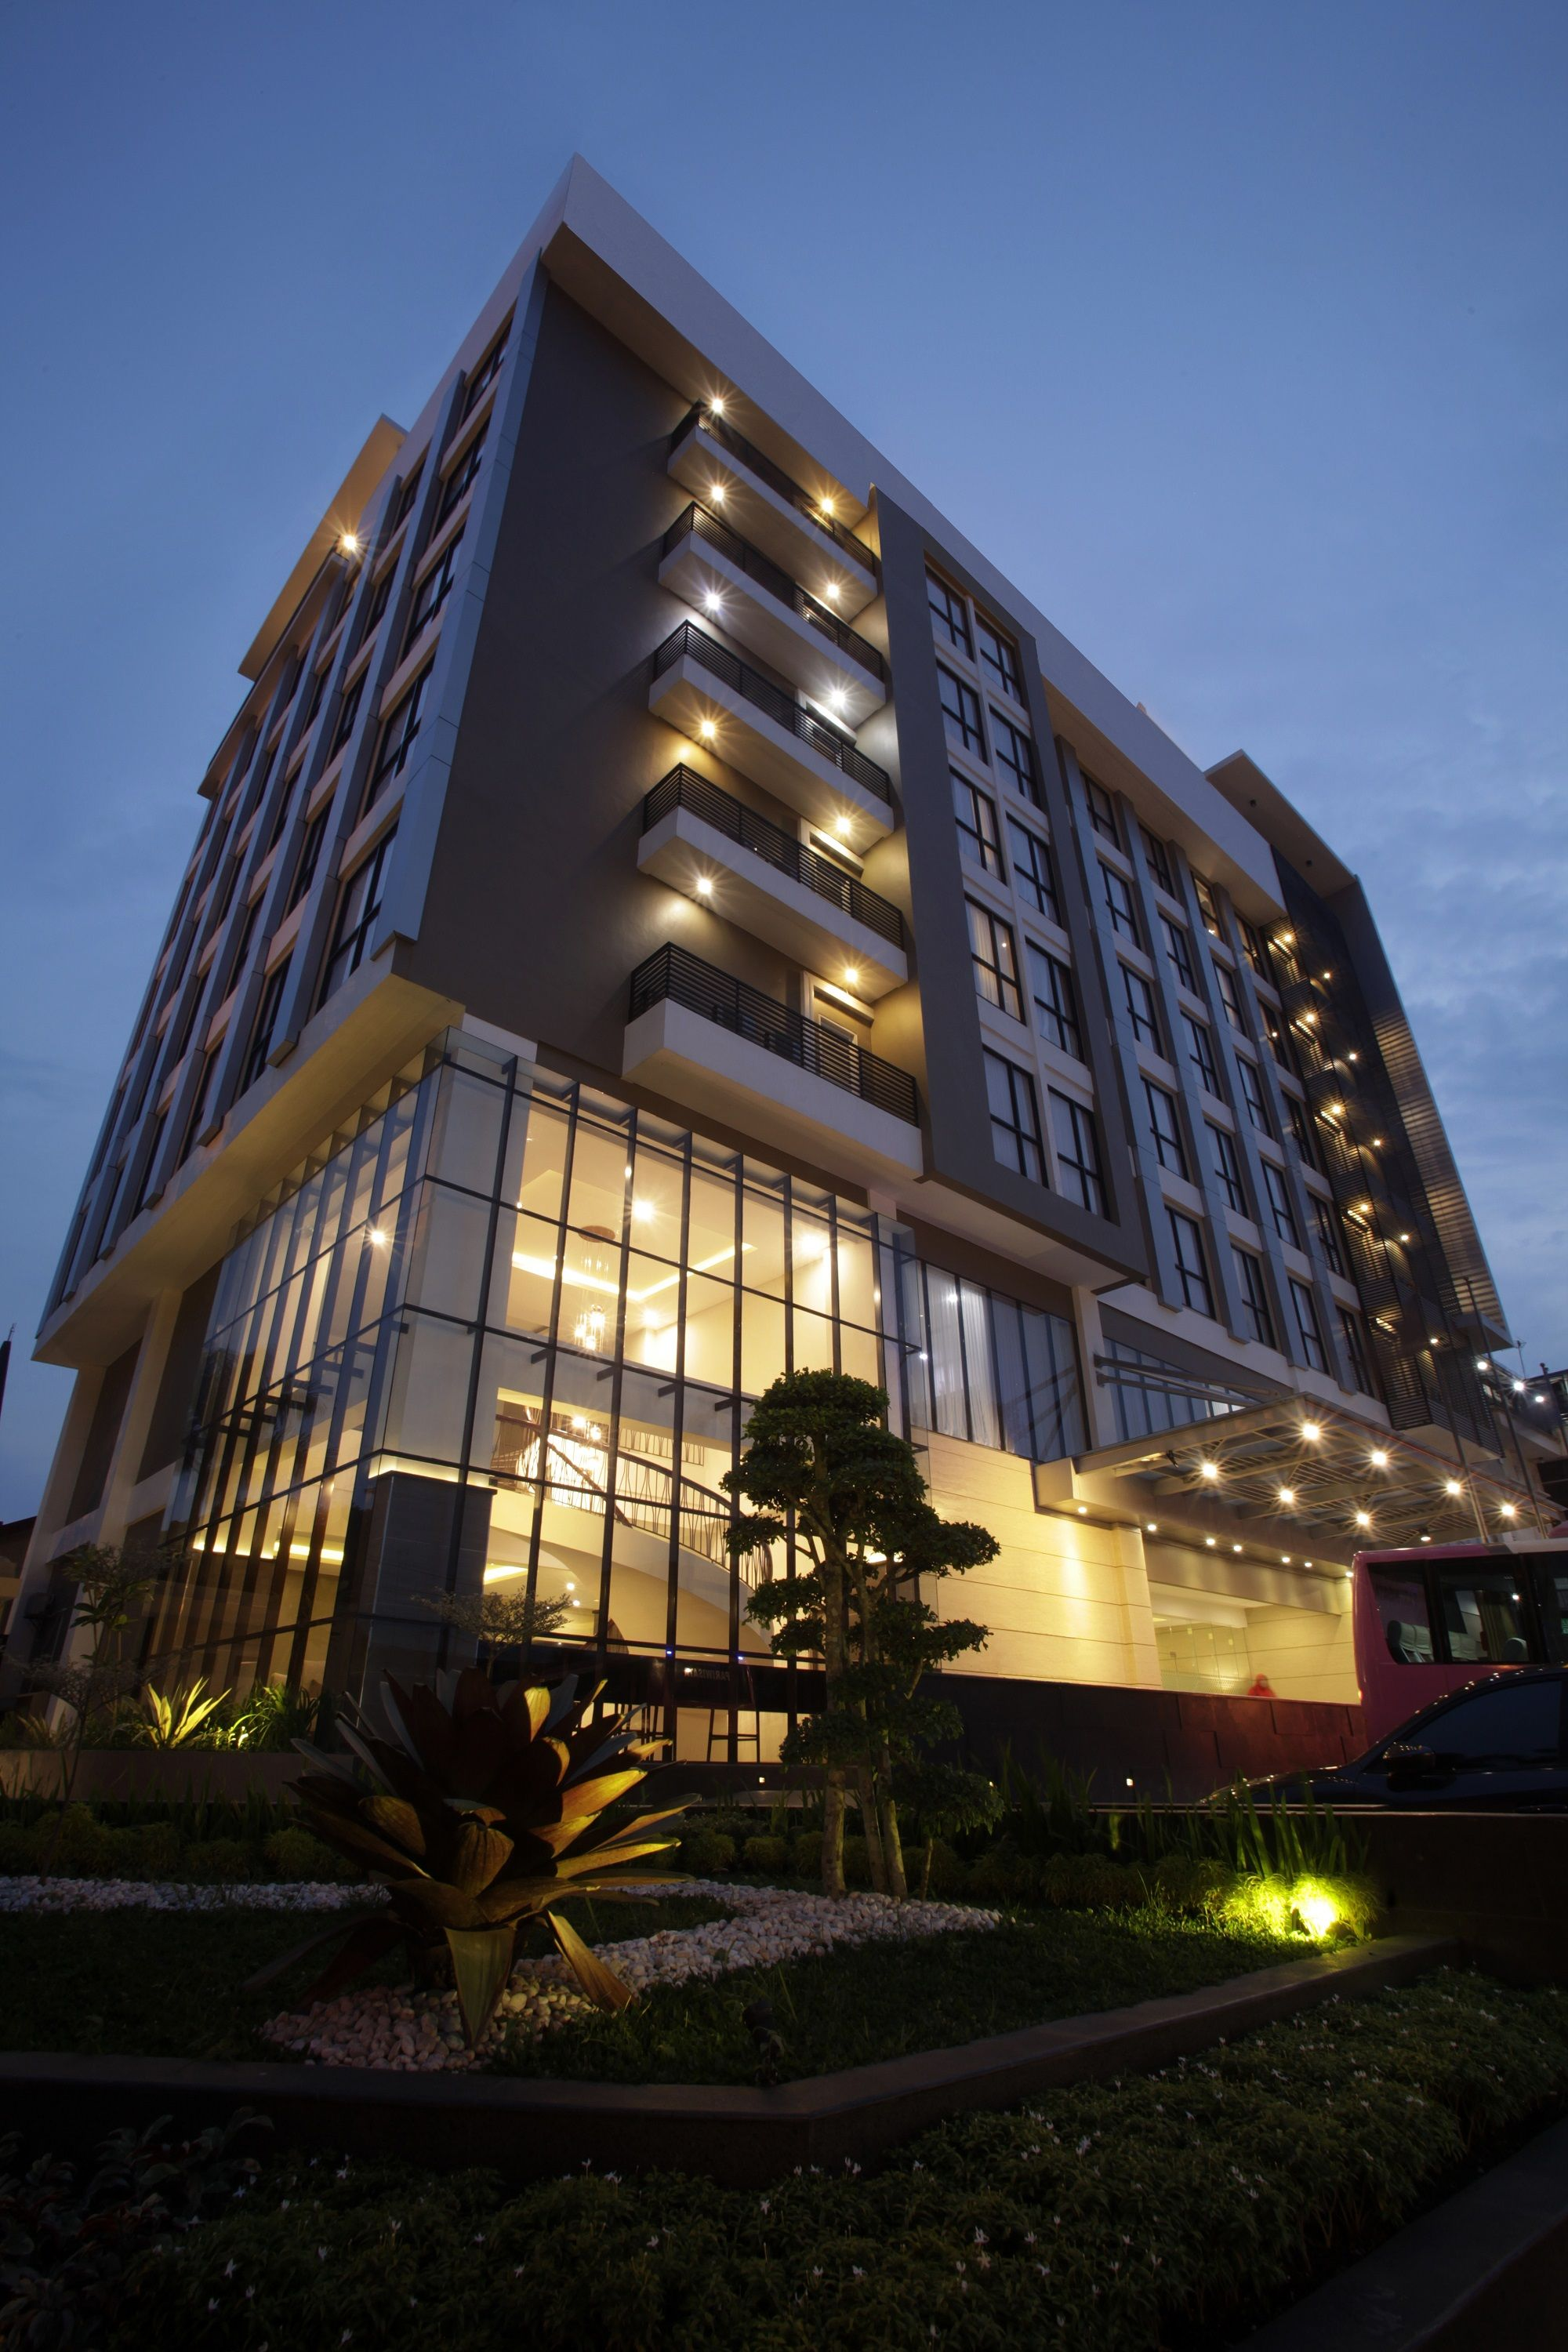 Swiss-Belinn Gajah Mada Medan,Motel Danau Toba International